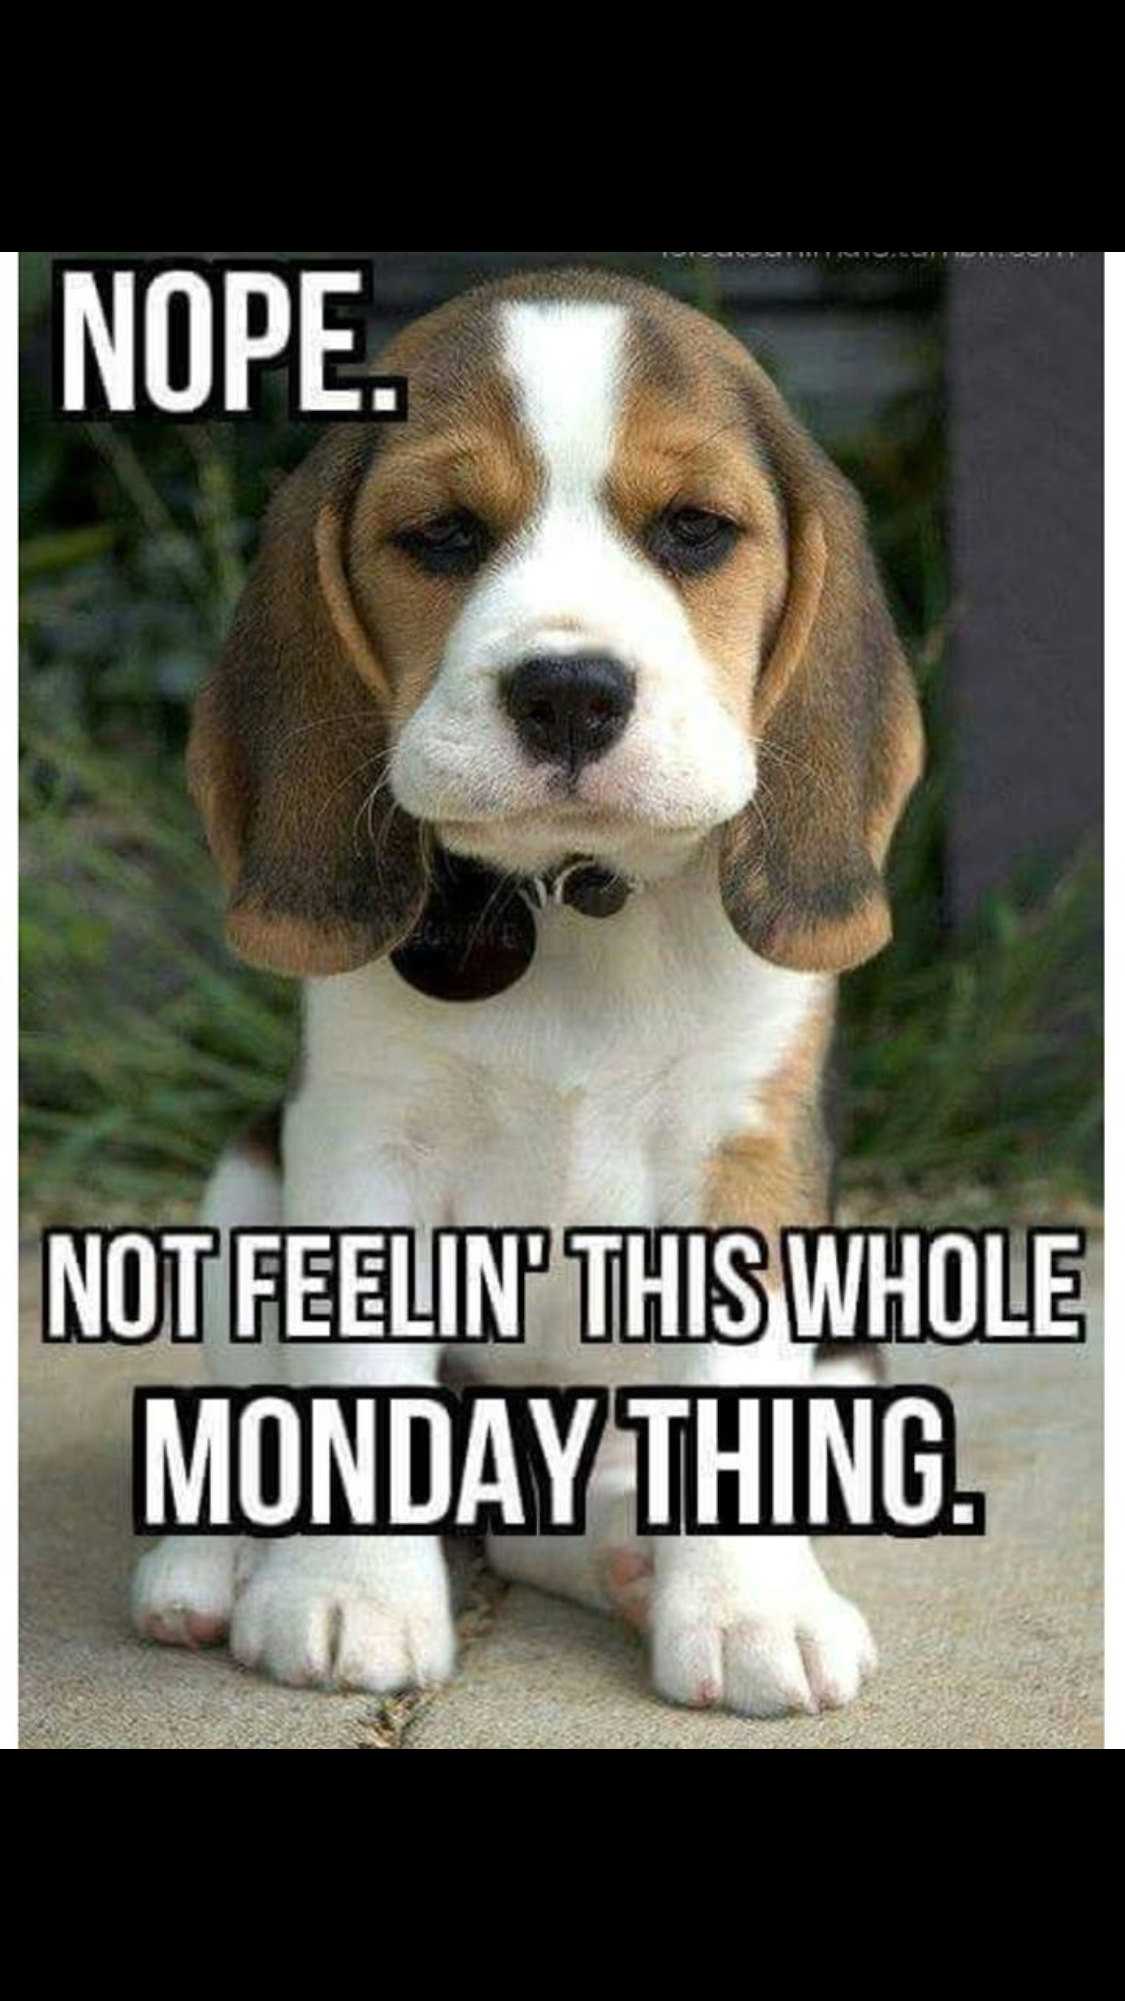 Happy Monday Meme Work : happy, monday, Memes, About, Mondays, Relatable!, Funny, Monday, Memes,, Morning, Quotes, Funny,, Humor